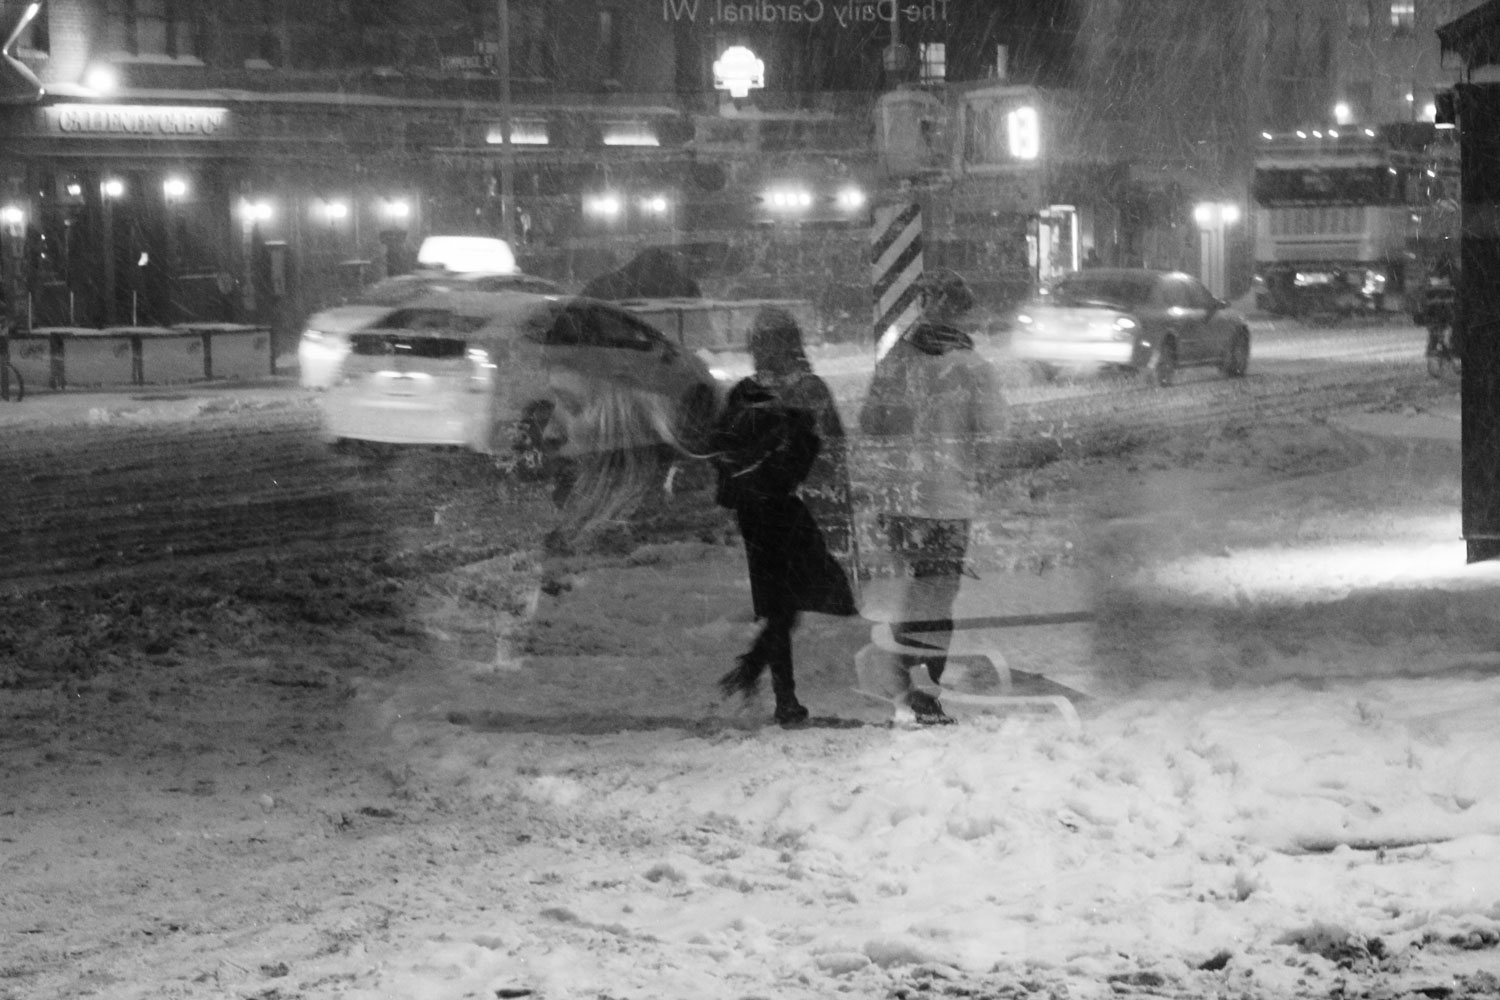 How-To-Survive-Your-First-Winter-in-NYC-by-Melina-Peterson-5thfloorwalkup.com.jpg